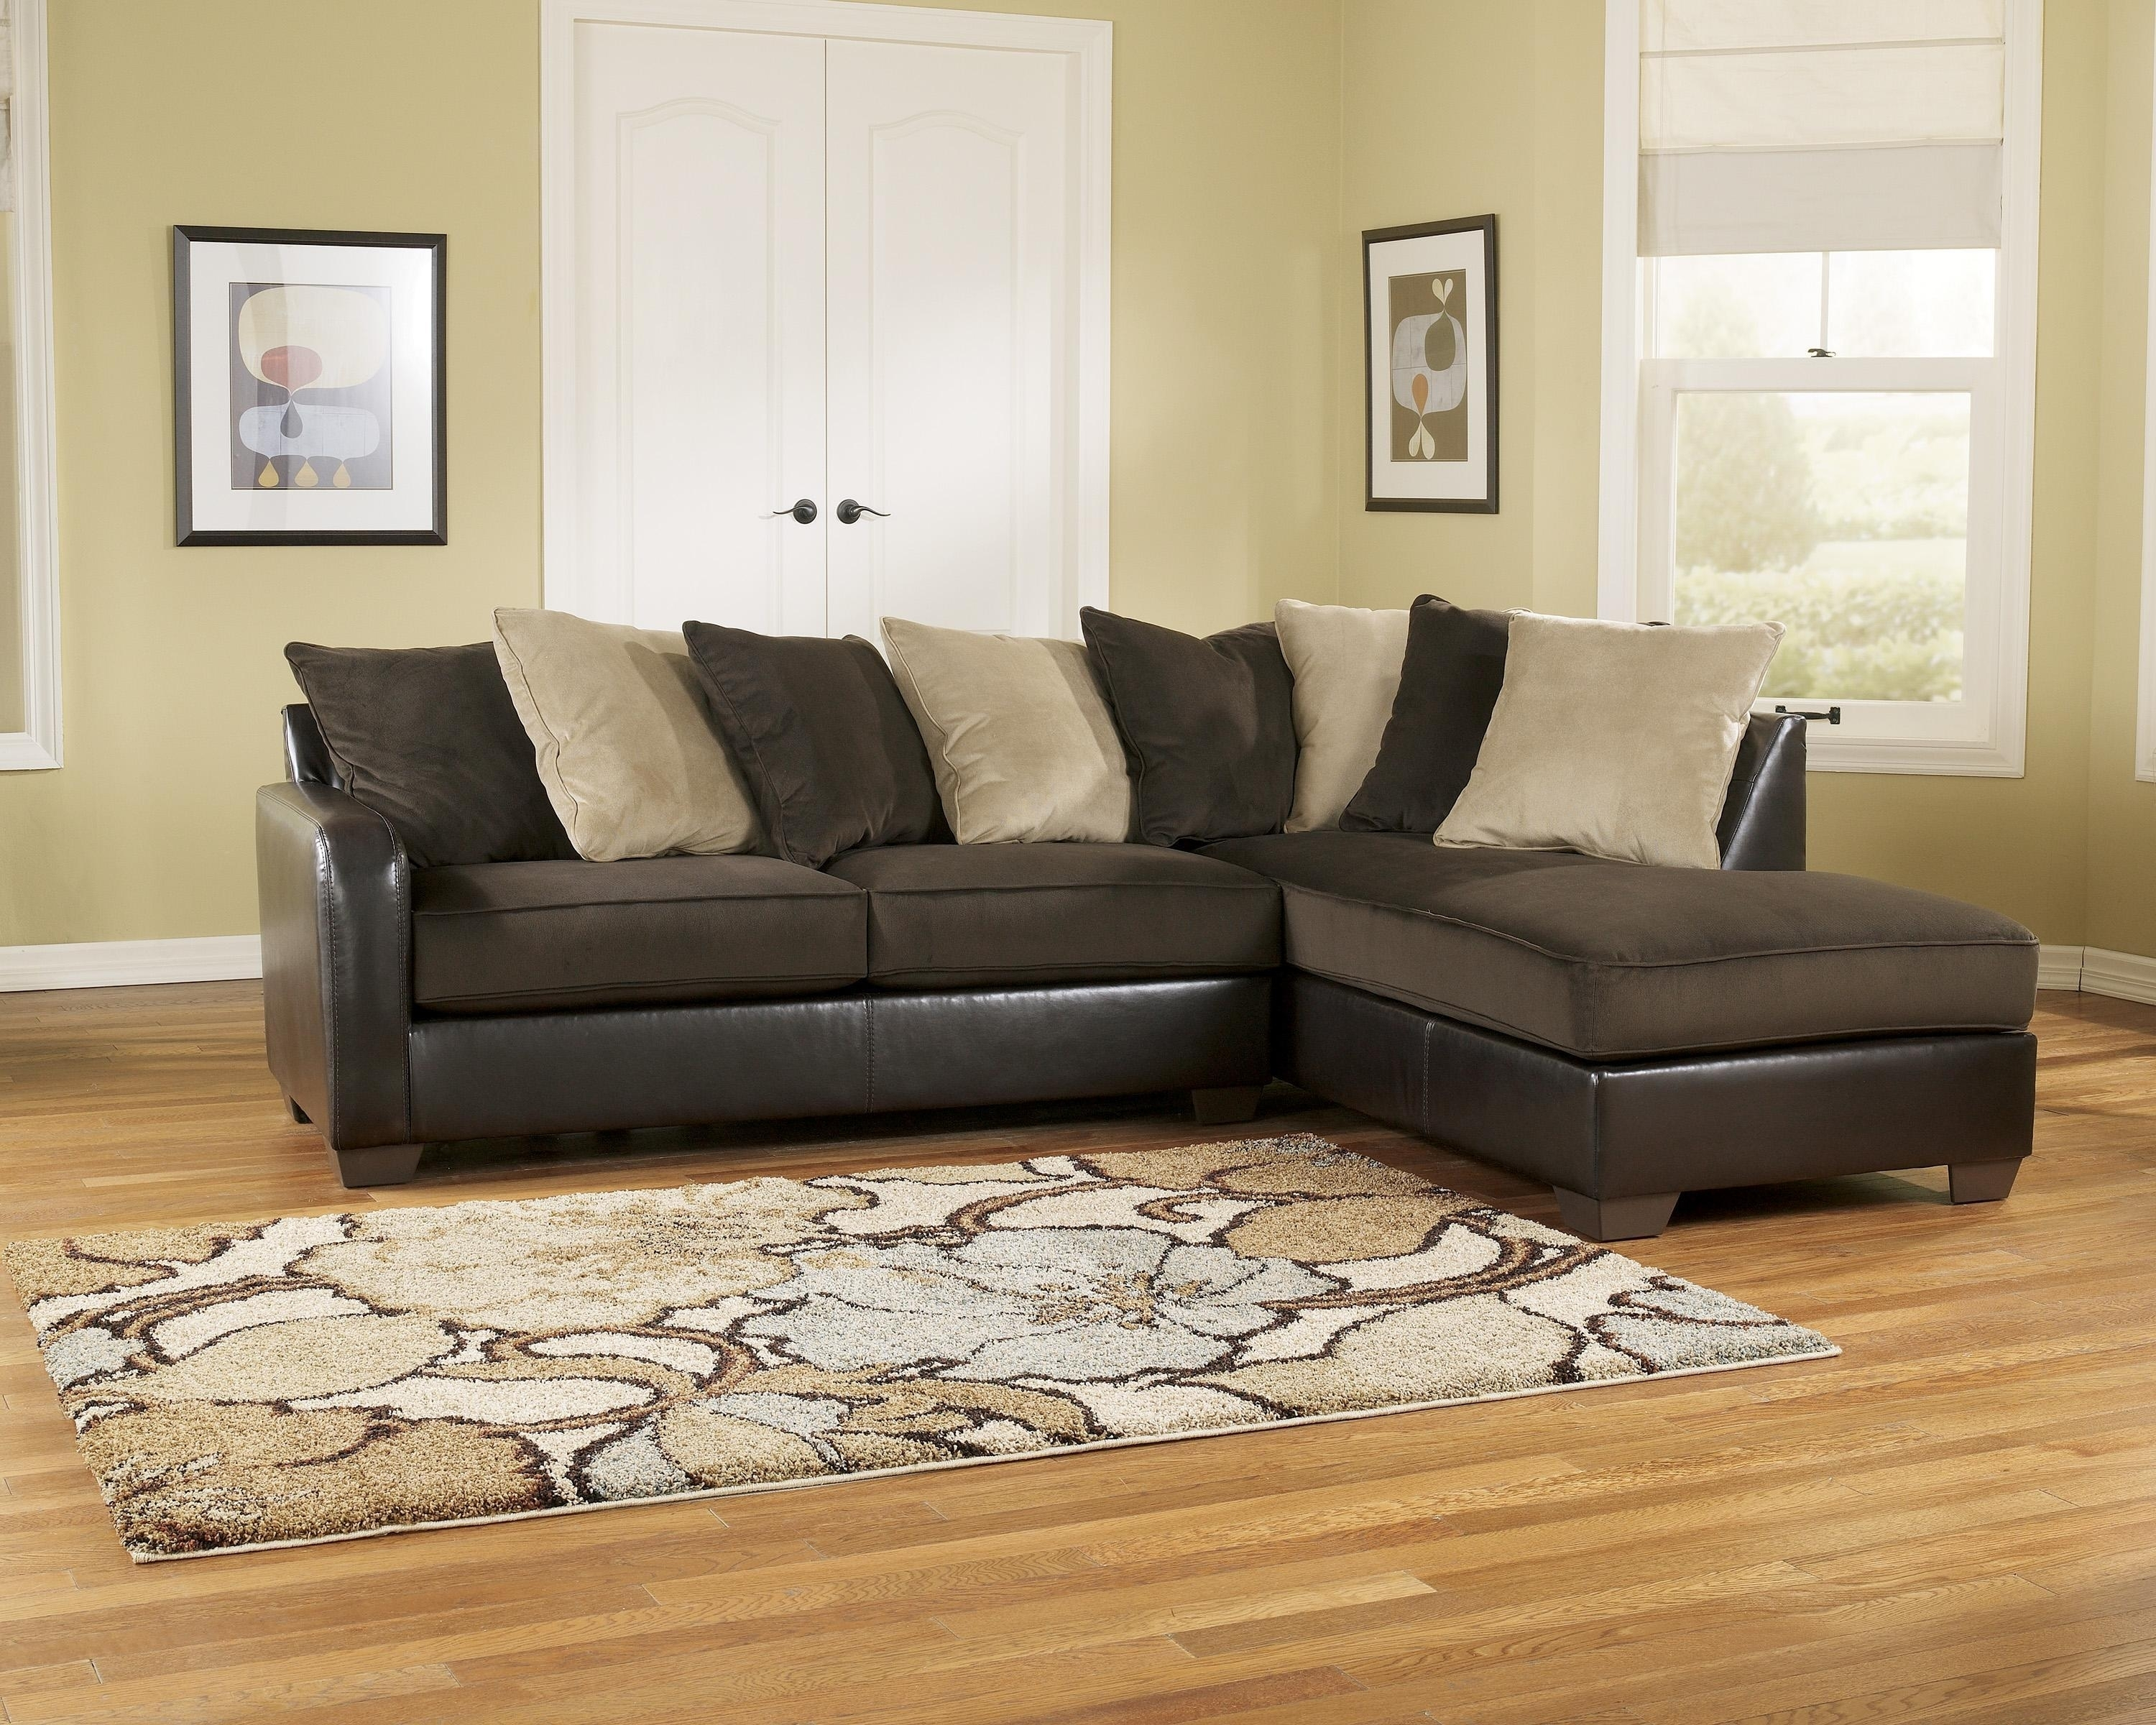 20 Top Sectional Sofas Ashley Furniture | Sofa Ideas regarding Sectional Sofas at Ashley (Image 3 of 15)